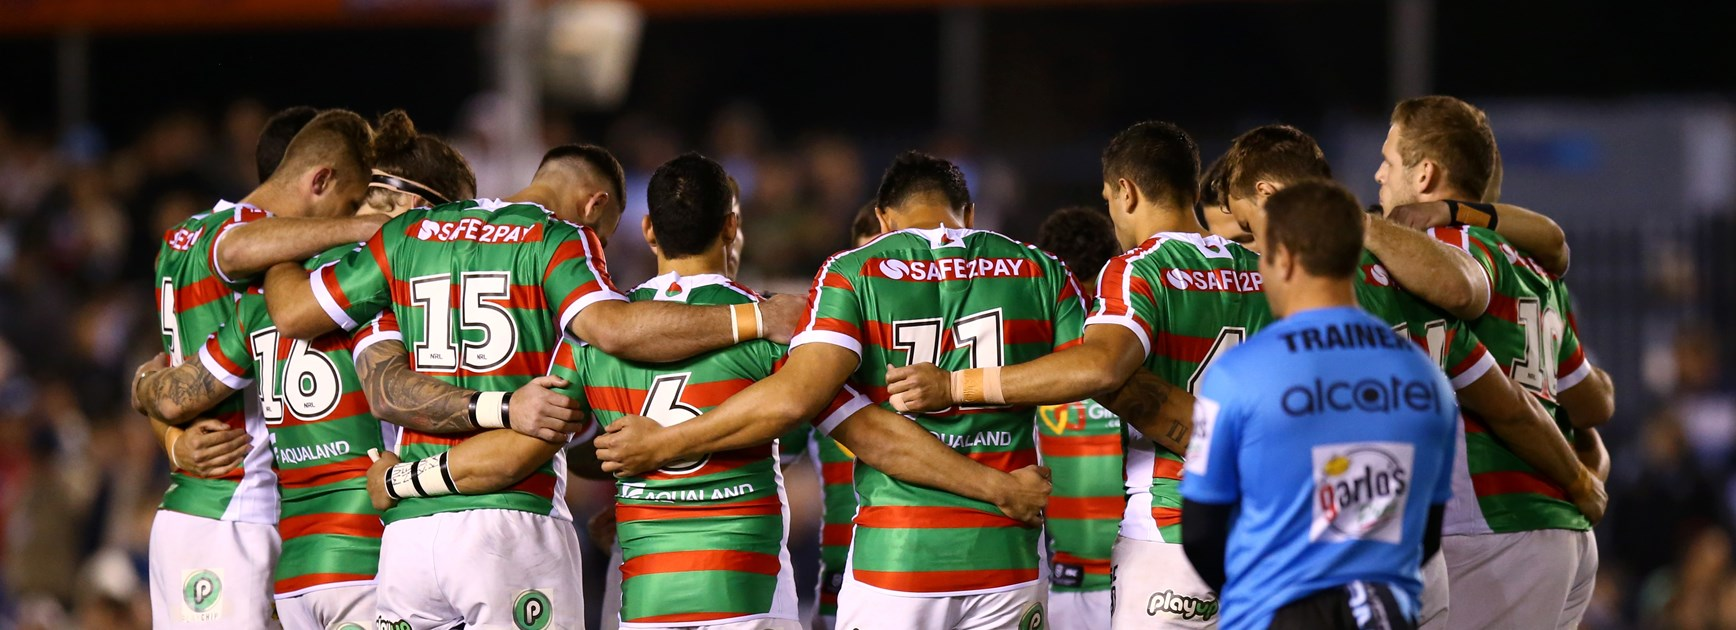 Rugby league world reacts to suspension of the NRL